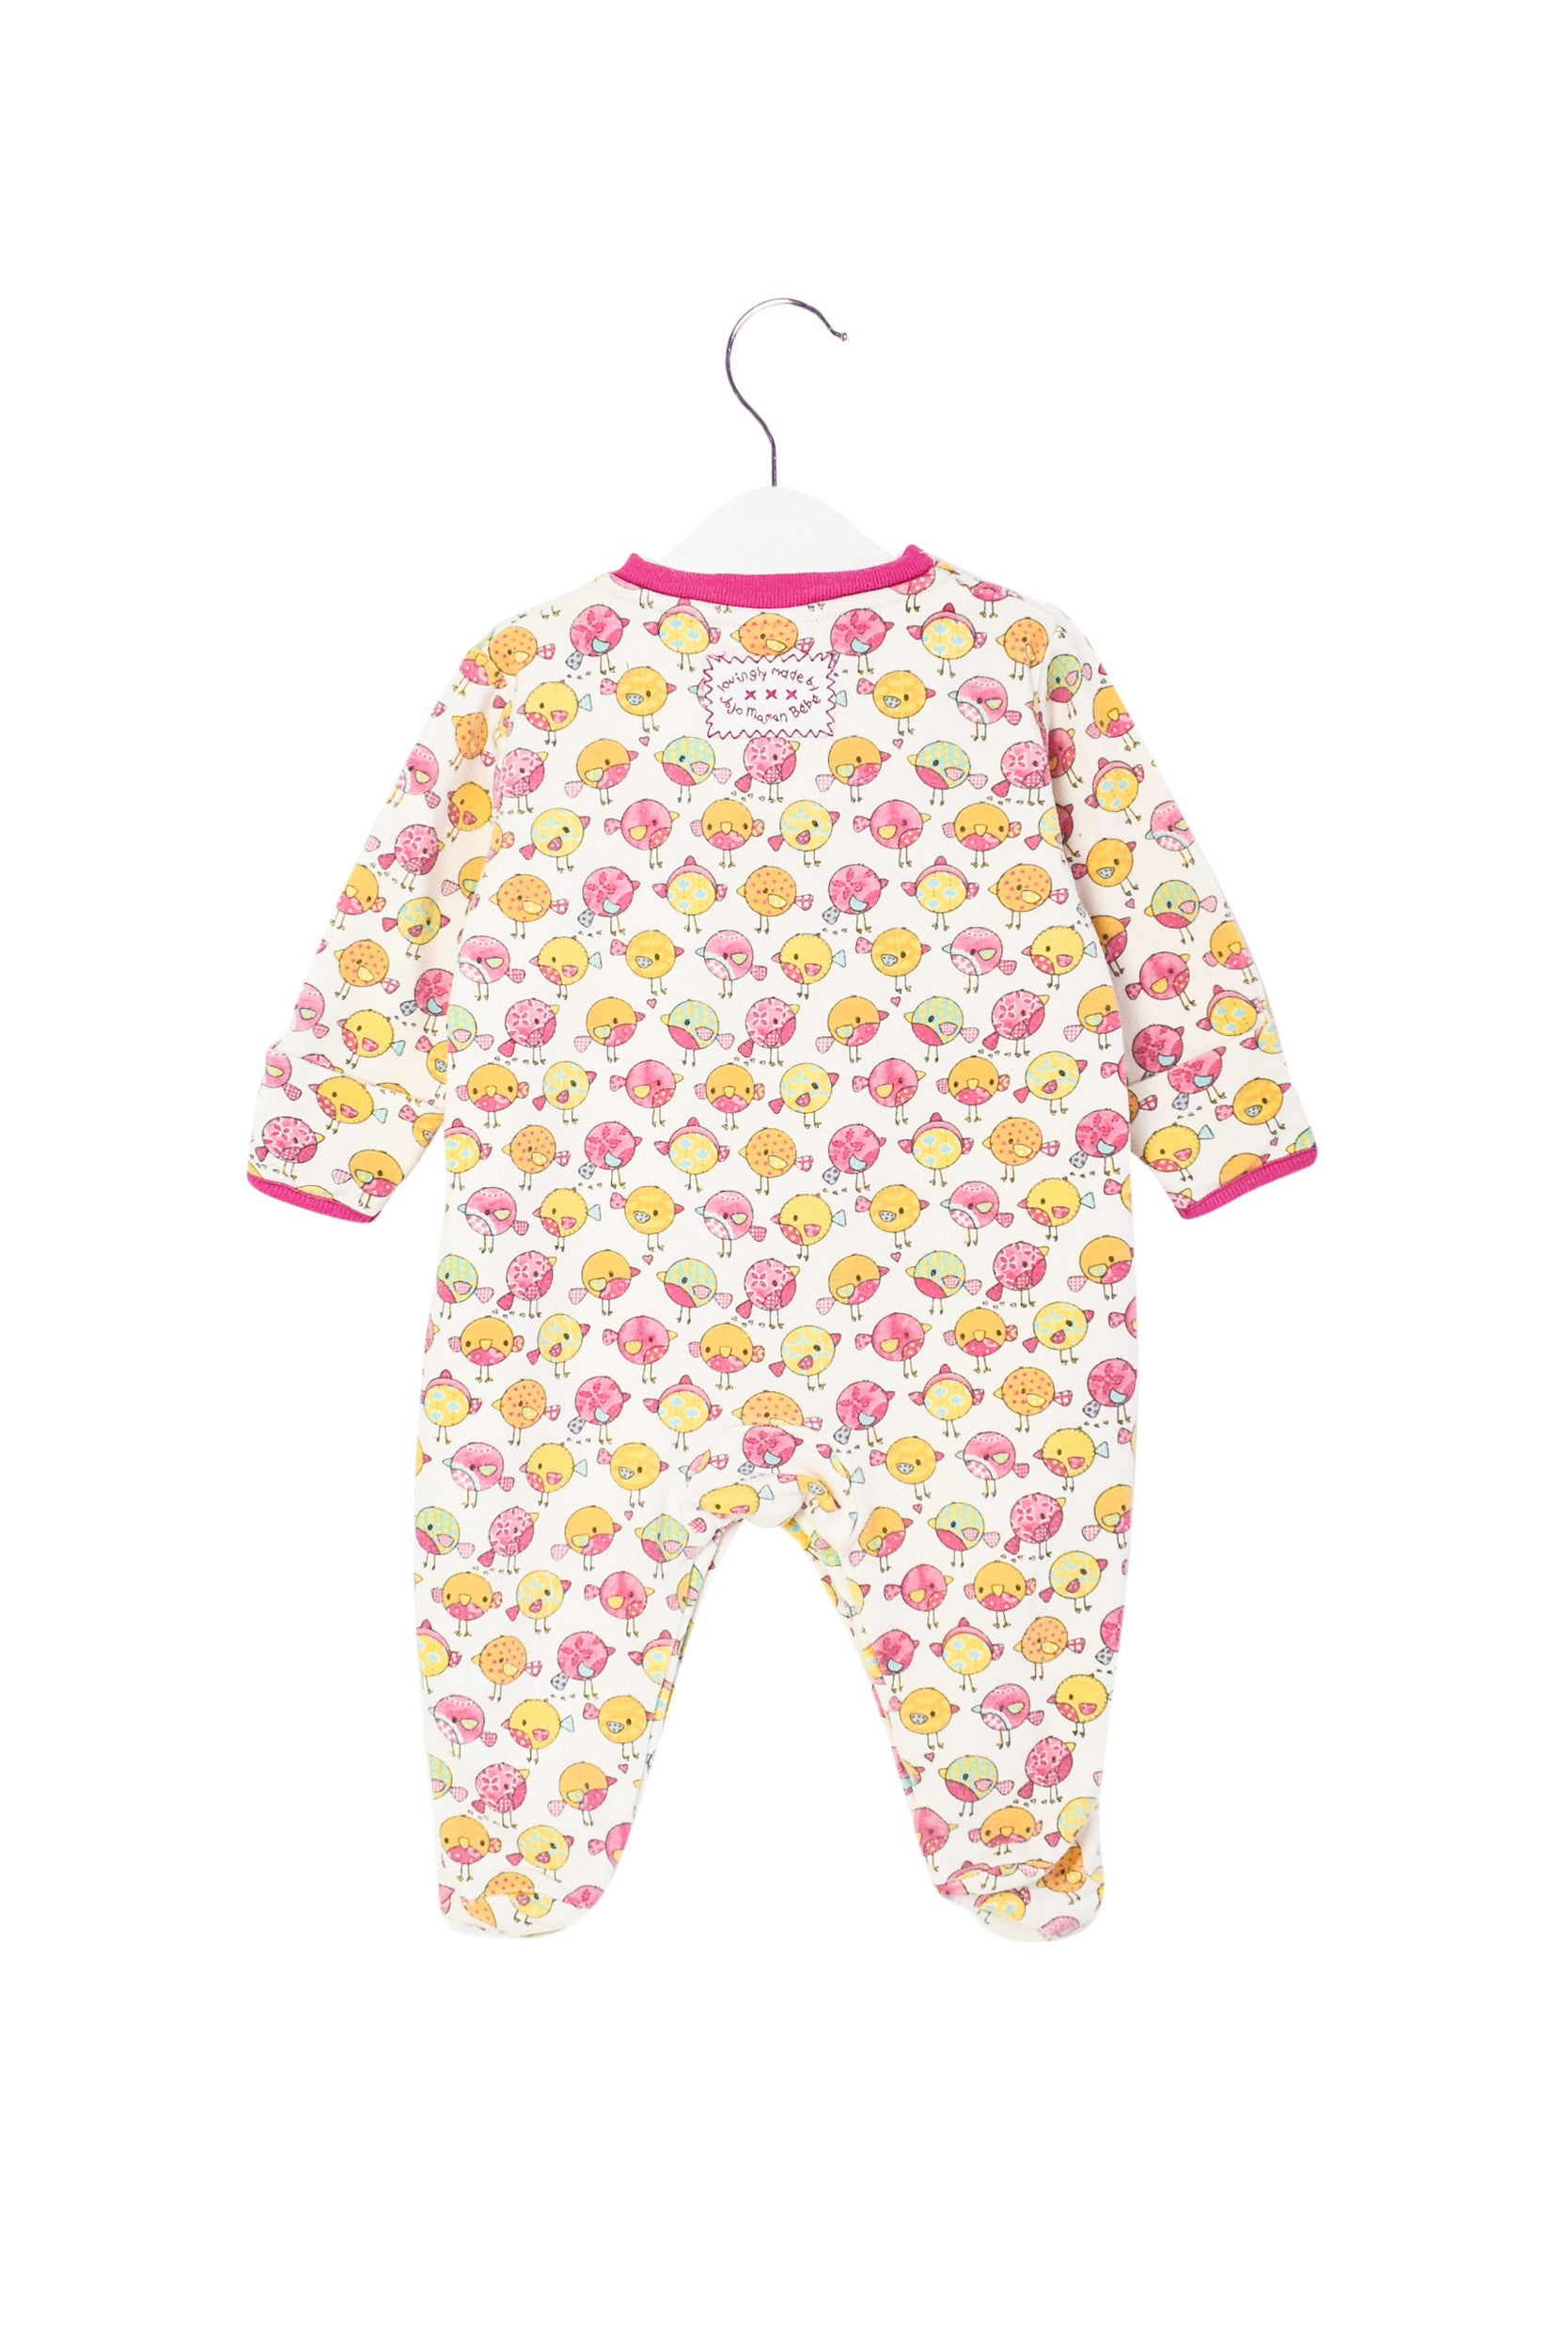 10003703 Jojo Maman Bebe Baby~Jumpsuit 3-6M at Retykle